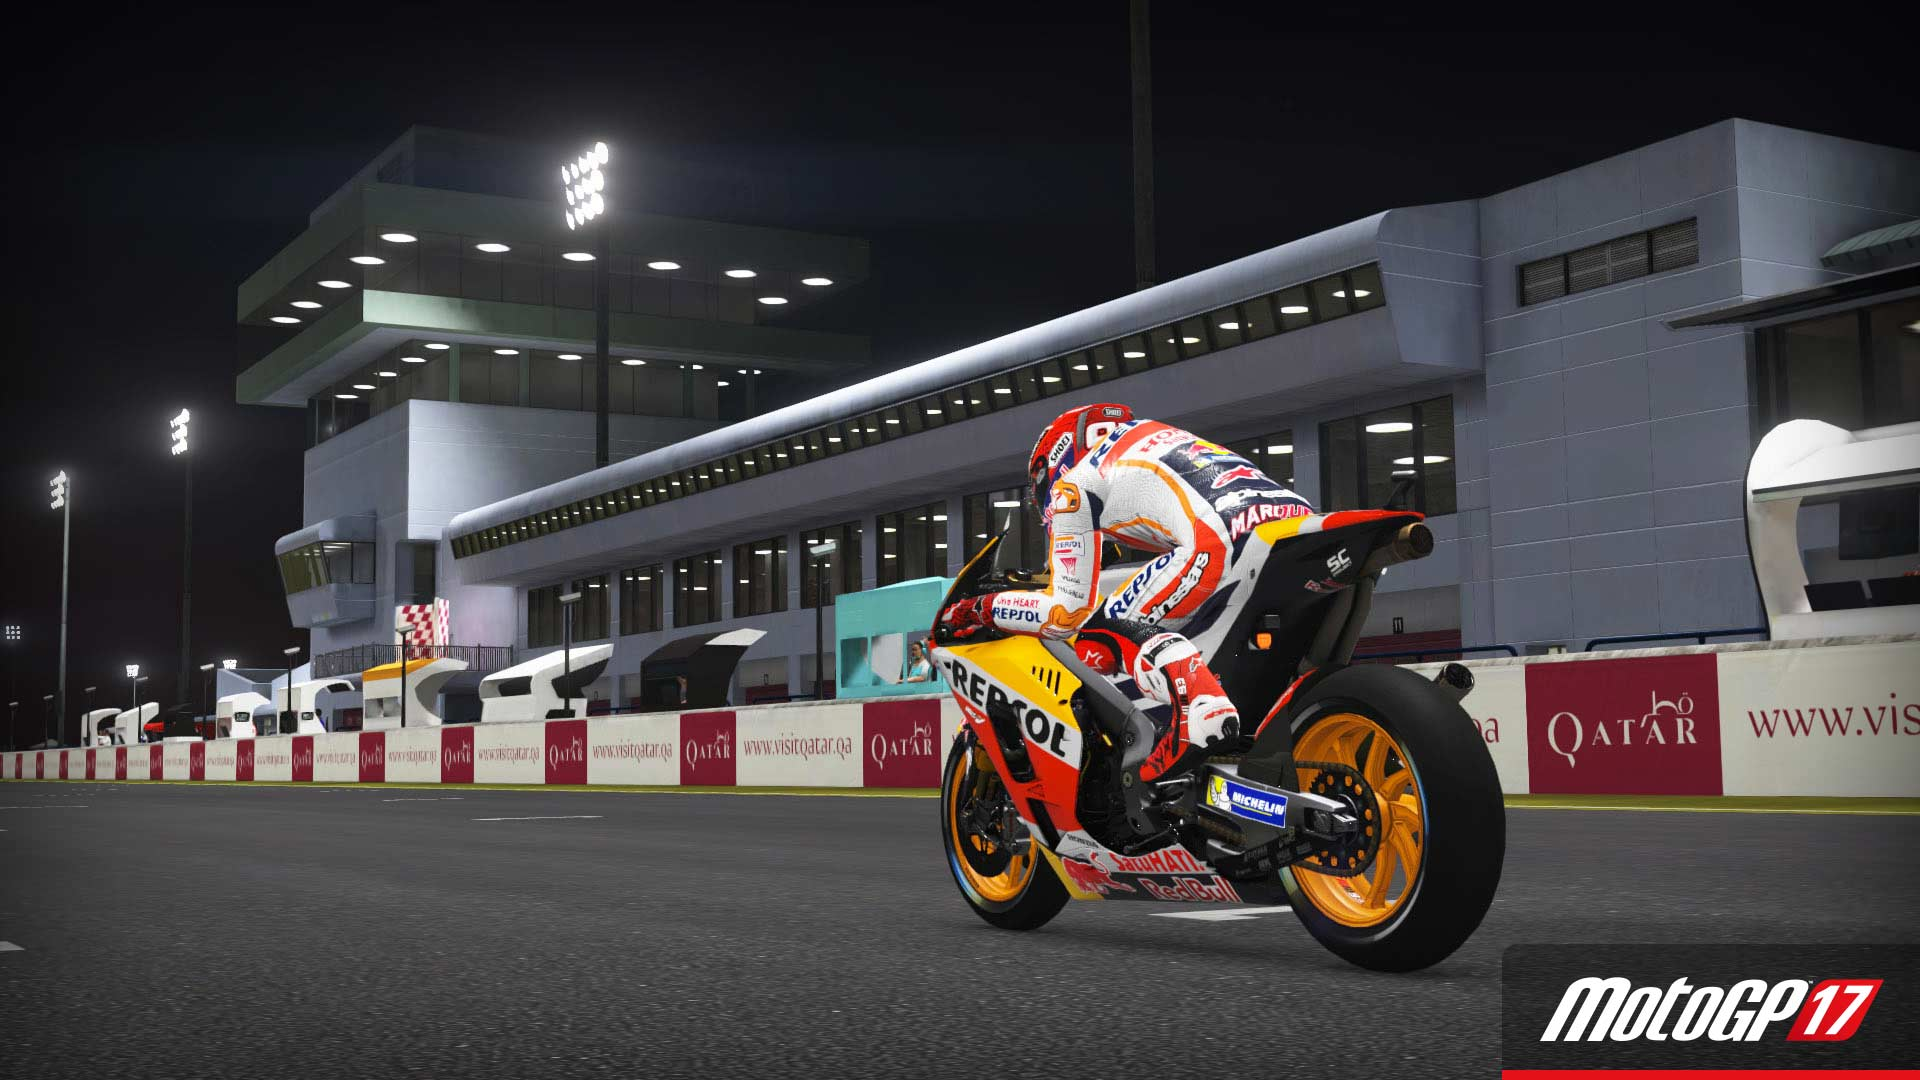 MotoGP 17 Launch images 8